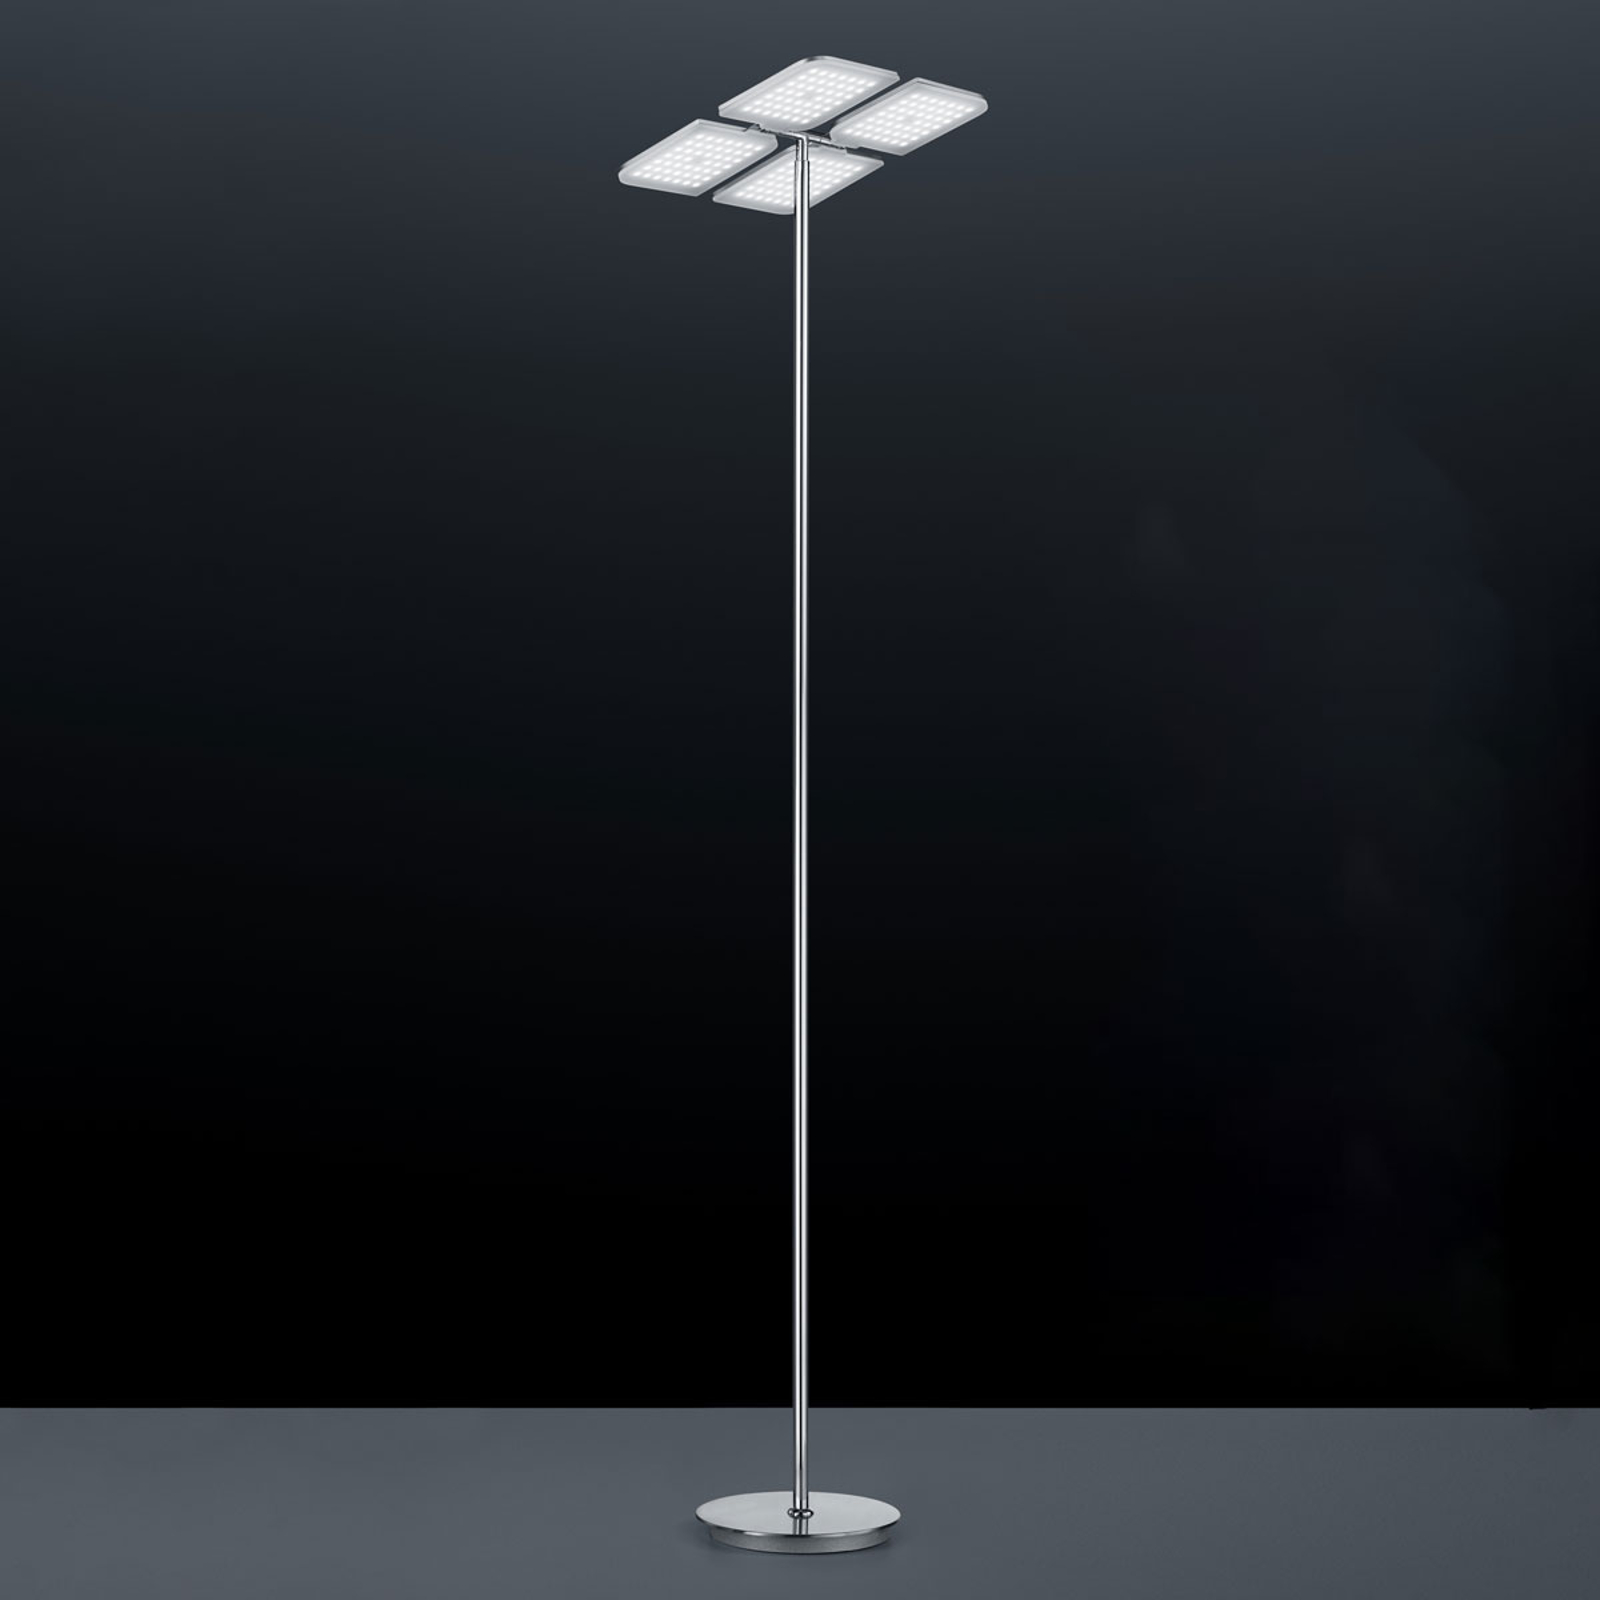 BANKAMP Quadrifoglio LED vloerlamp, warmwit